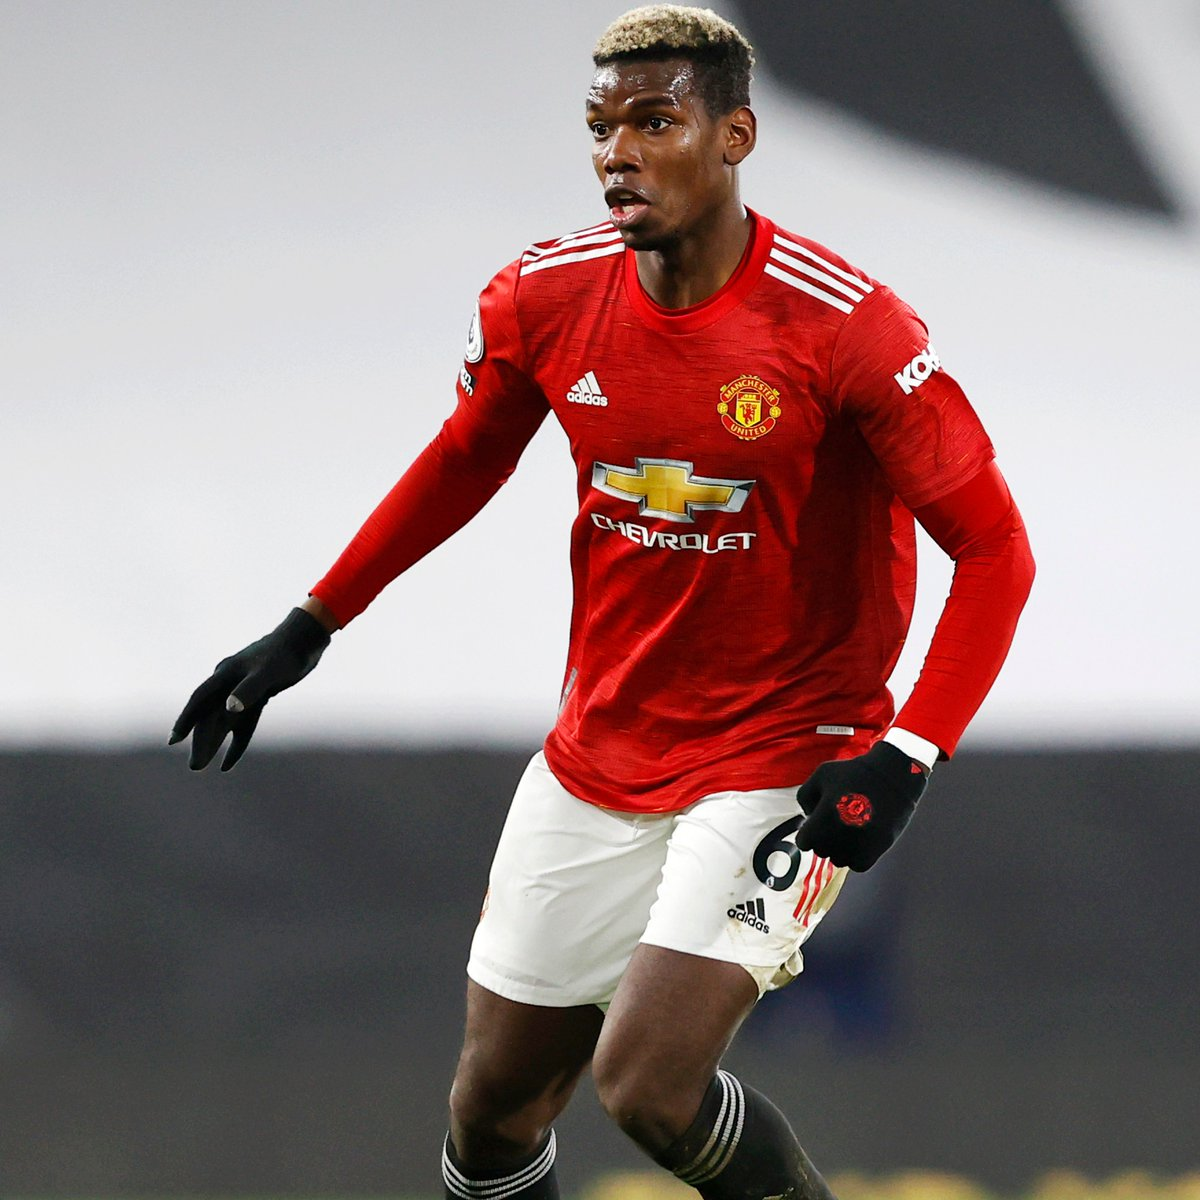 Replying to @ManUtd: Out of this W🌍rld 🚀  #MUFC @PaulPogba